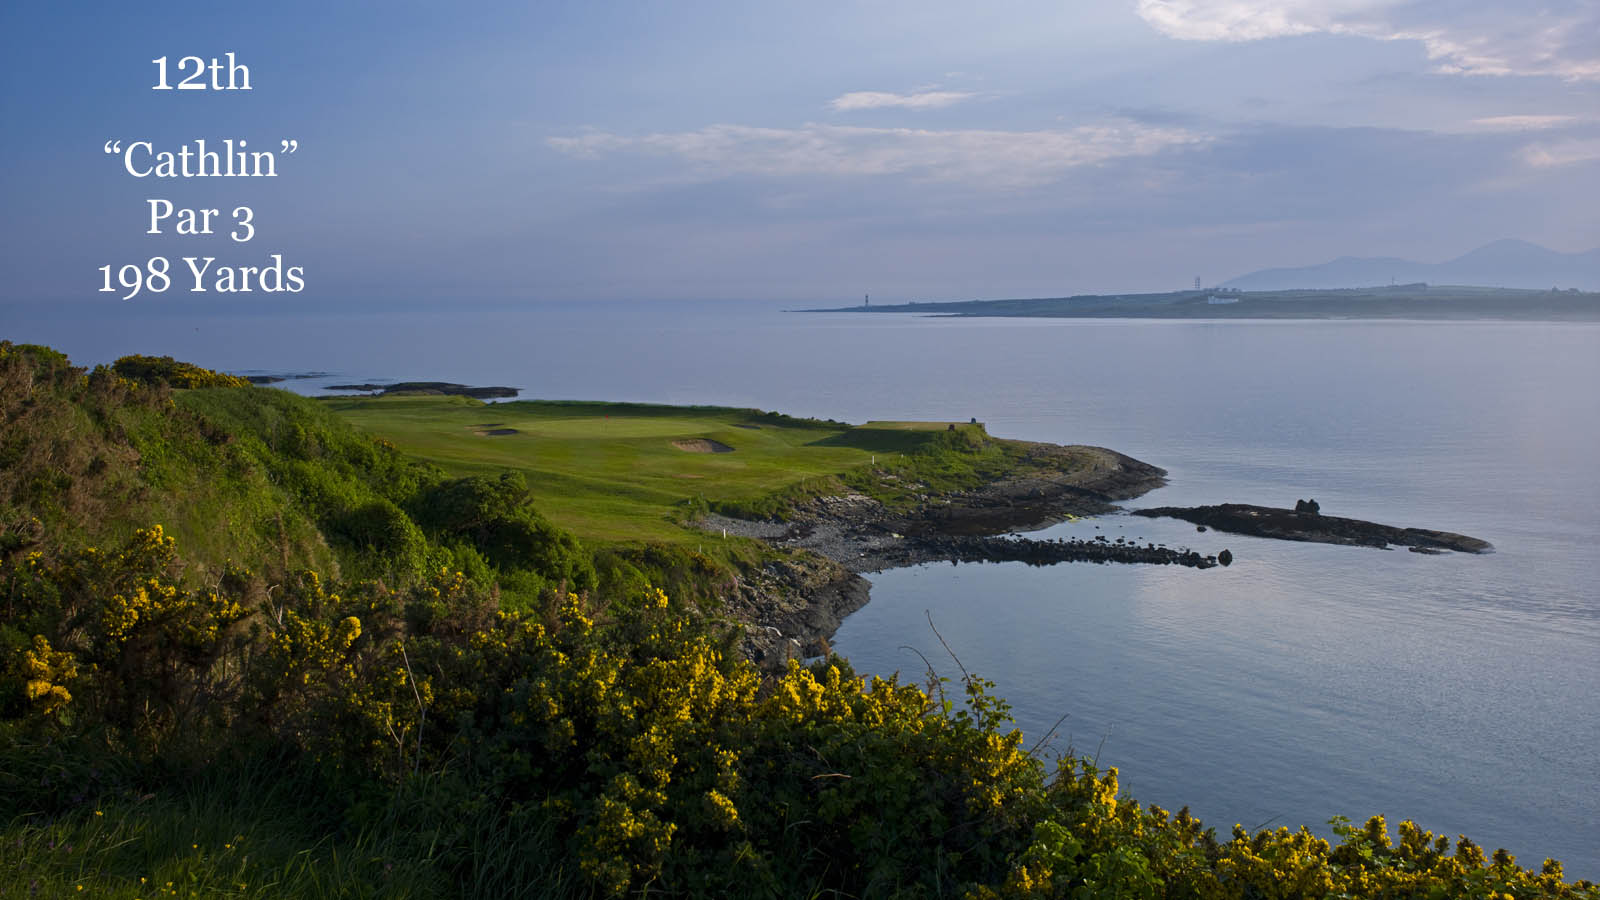 Image overlooking the sea and 13th green on the golf course at Ardglass Golf Club, Northern Ireland